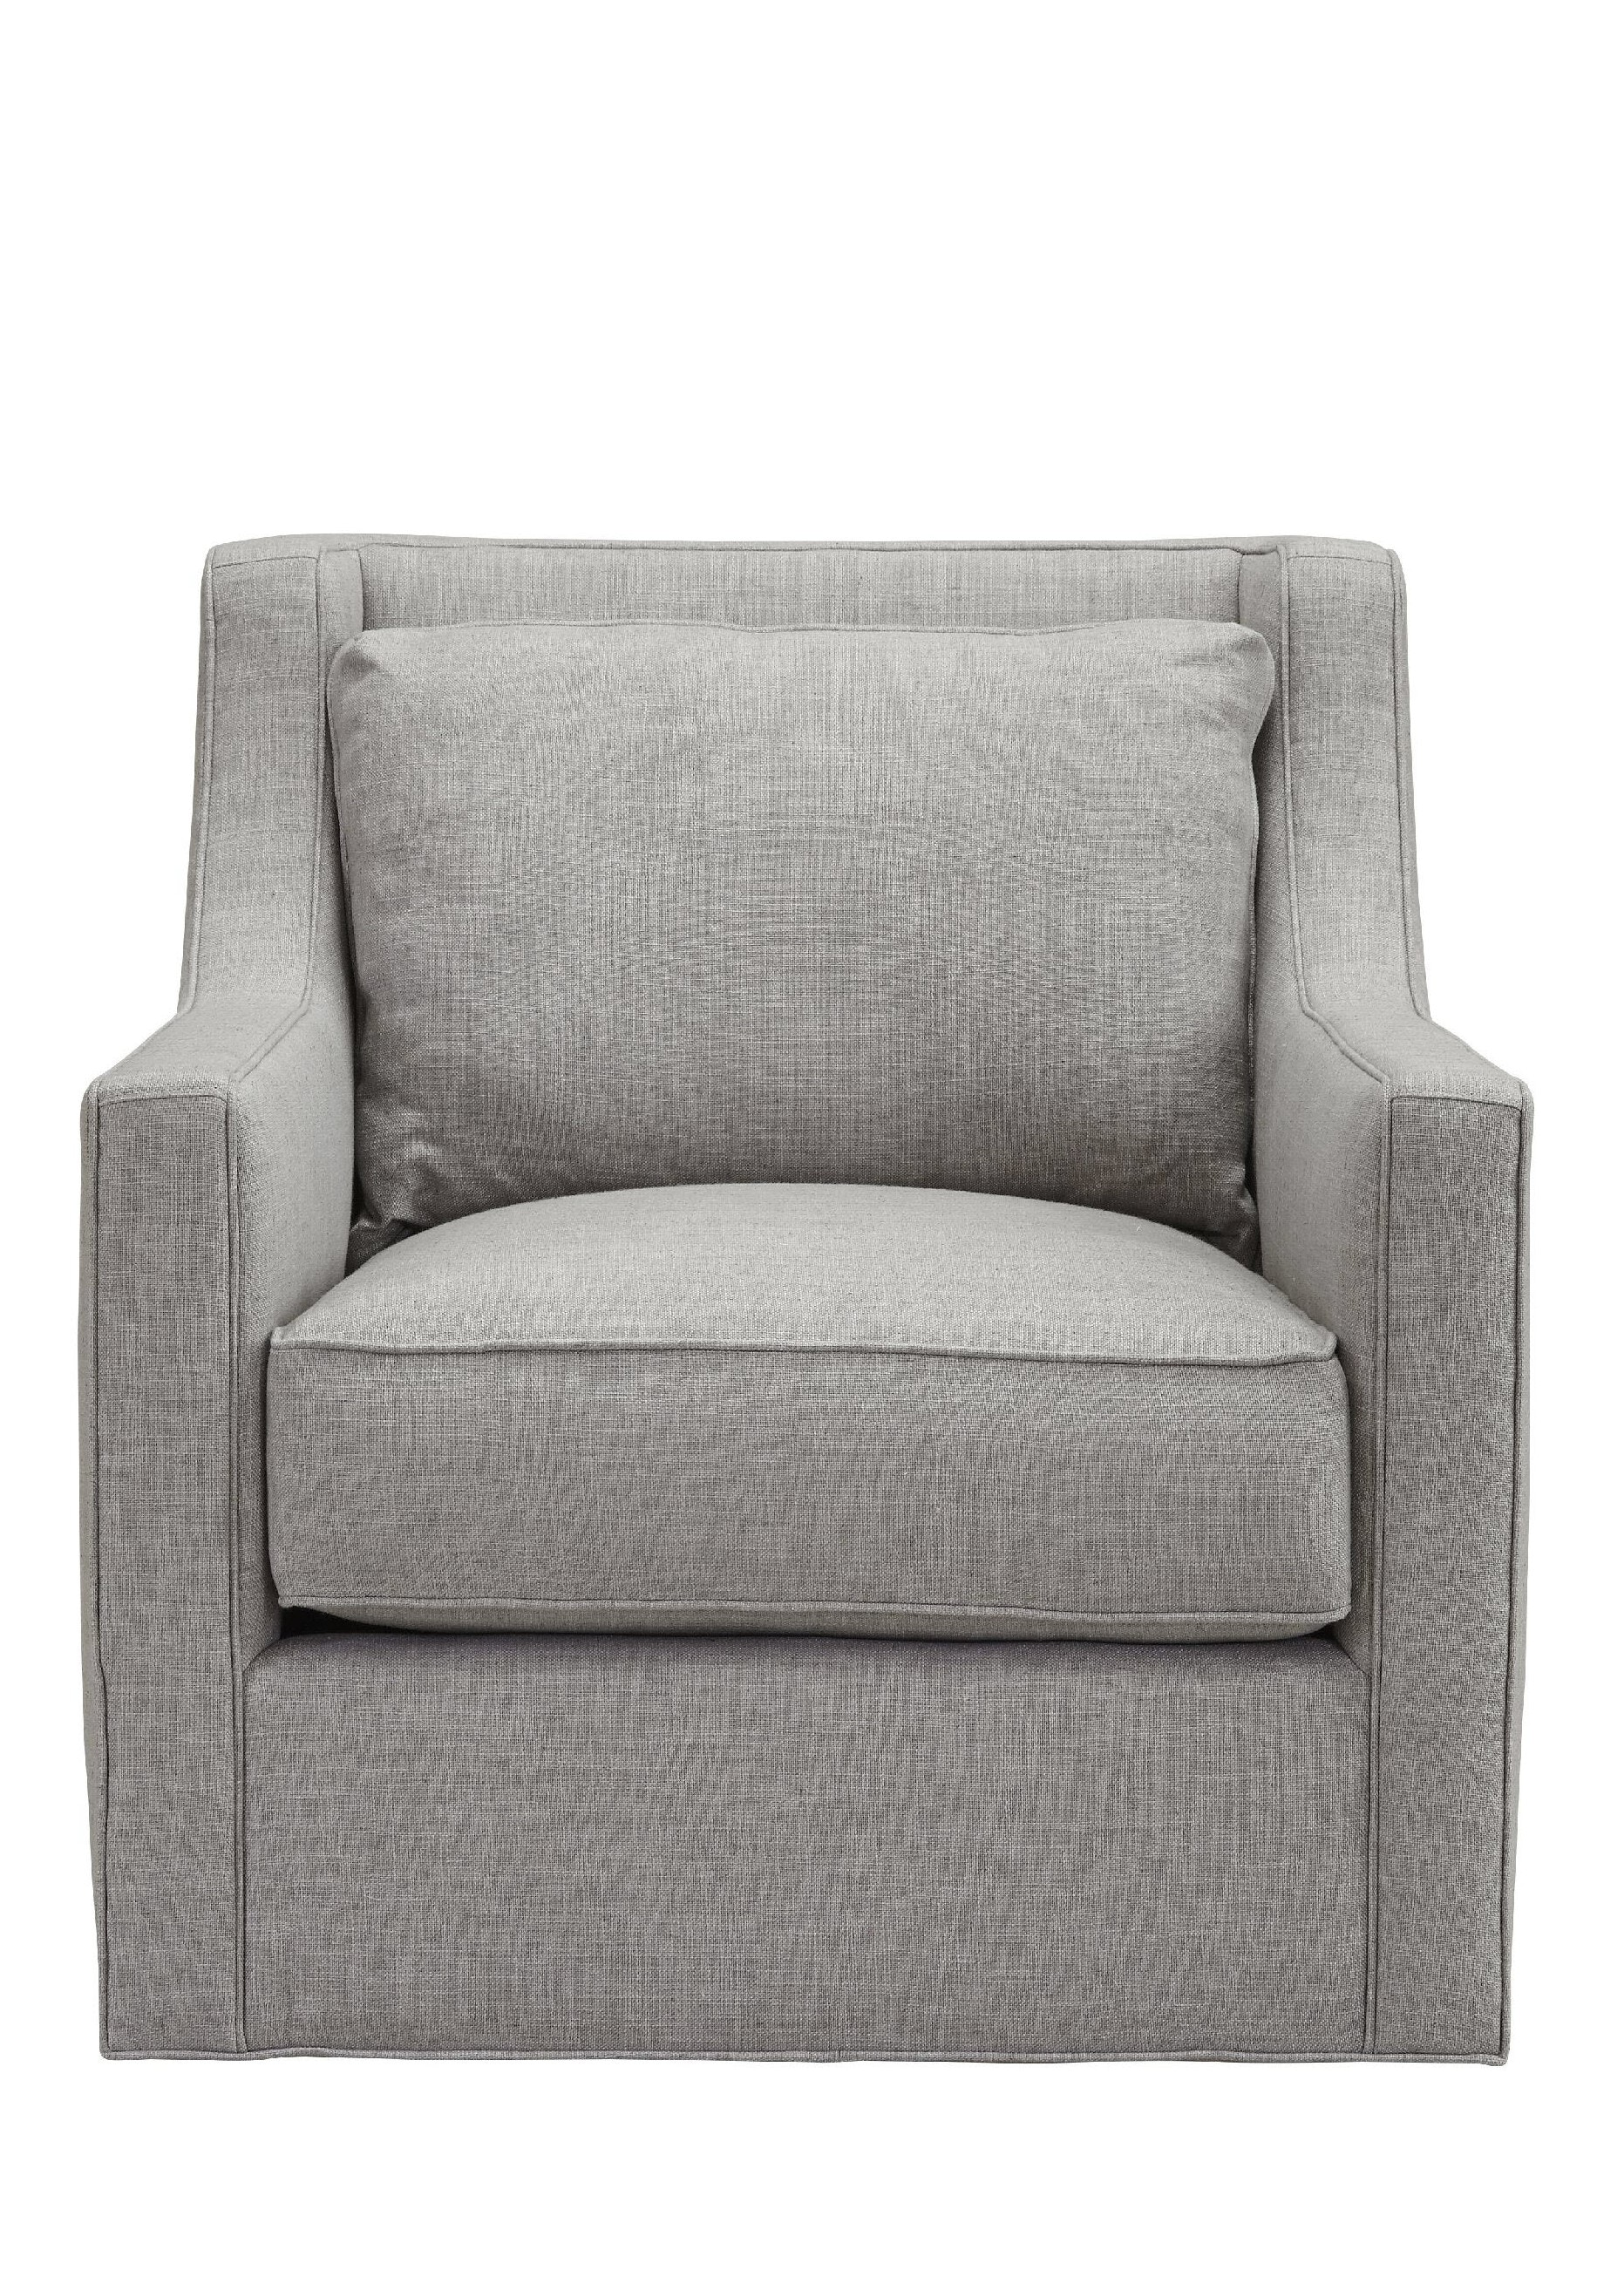 Southern Furniture Living Room Salina Swivel Chair 32019 Seville